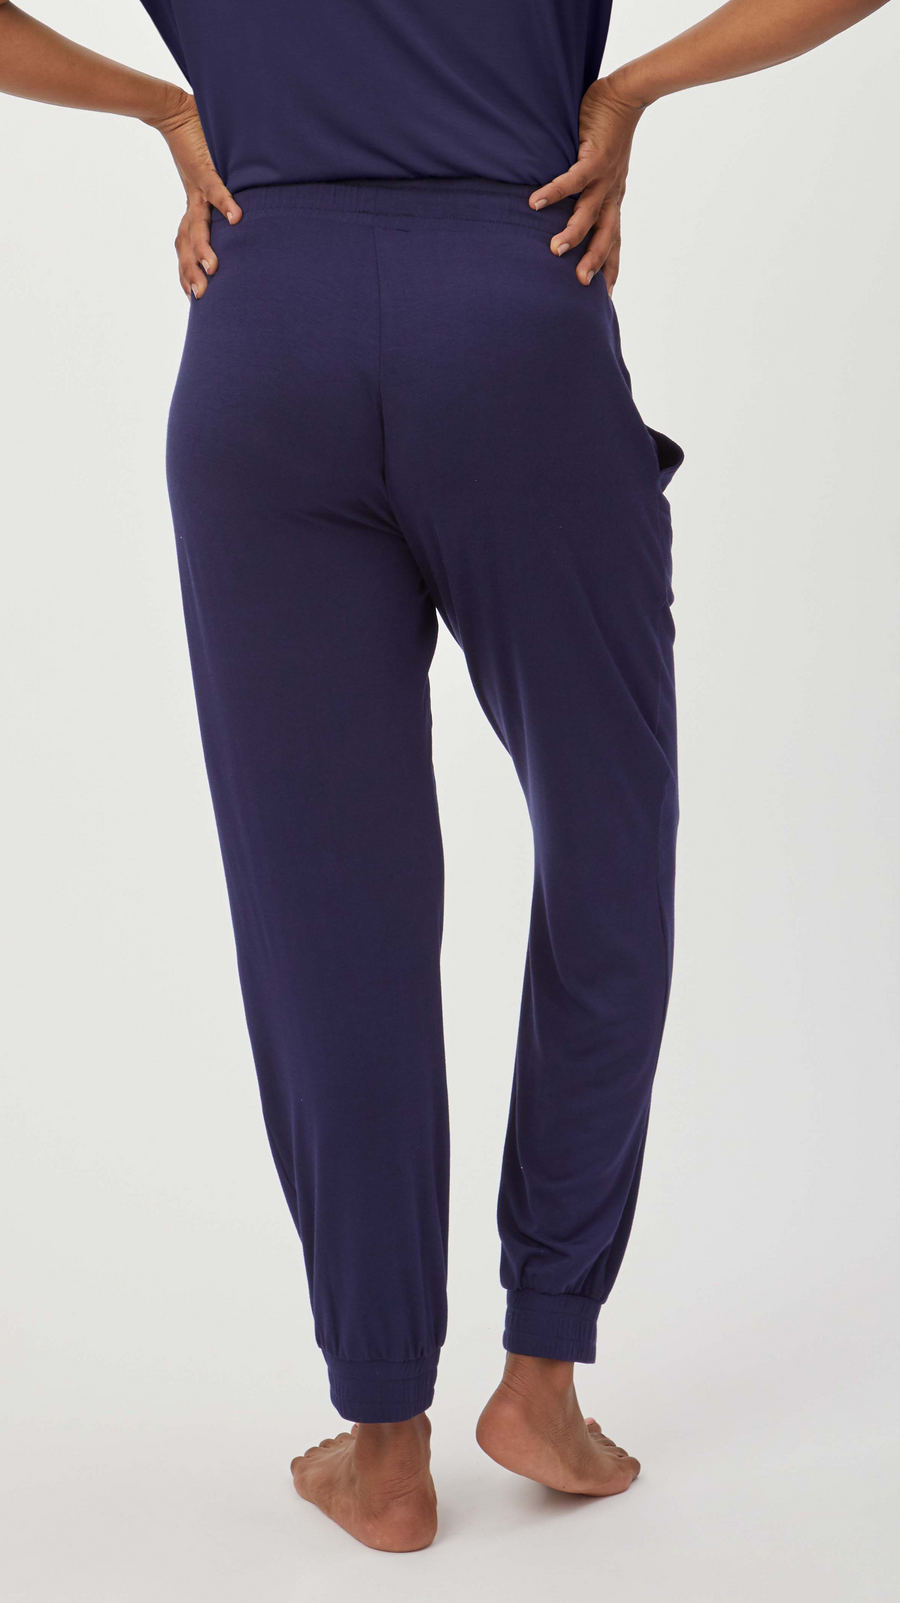 Stowaway Collection Maternity Loungewear Jogger in Navy - Front View